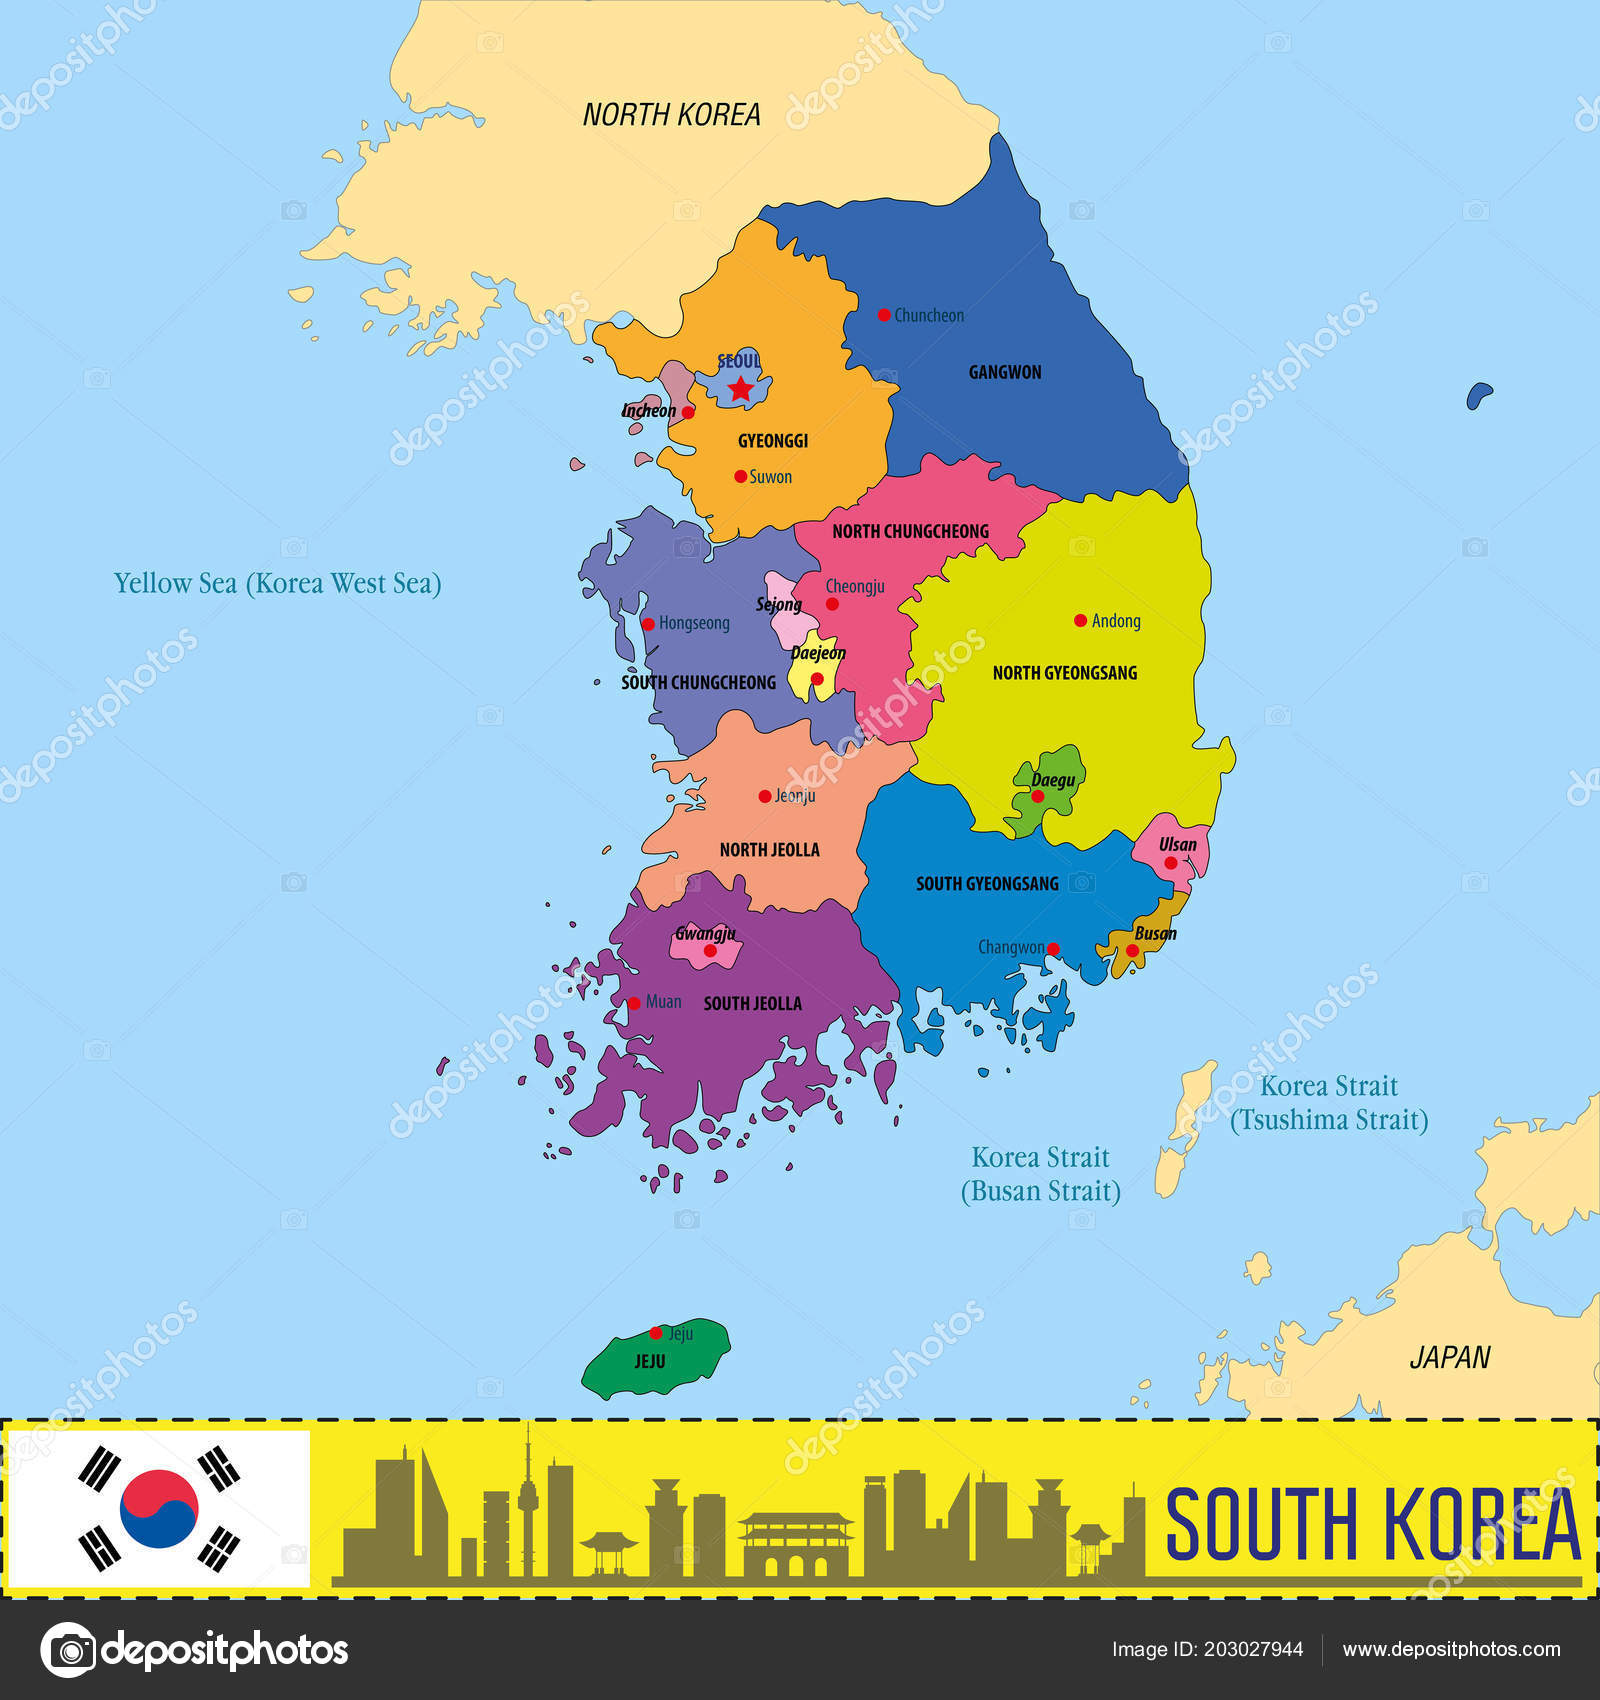 somalia map, korean people, south africa, united states map, time zone map, germany map, canada map, russia map, sumatra map, kim il-sung, tanzania map, korean peninsula, europe map, greece map, philippines map, pyeongtaek map, north korea, china map, korean peninsula map, india map, kim jong-un, japan map, united kingdom map, geoje map, korean language, east asia, nepal map, korean war, asia map, on korea south map